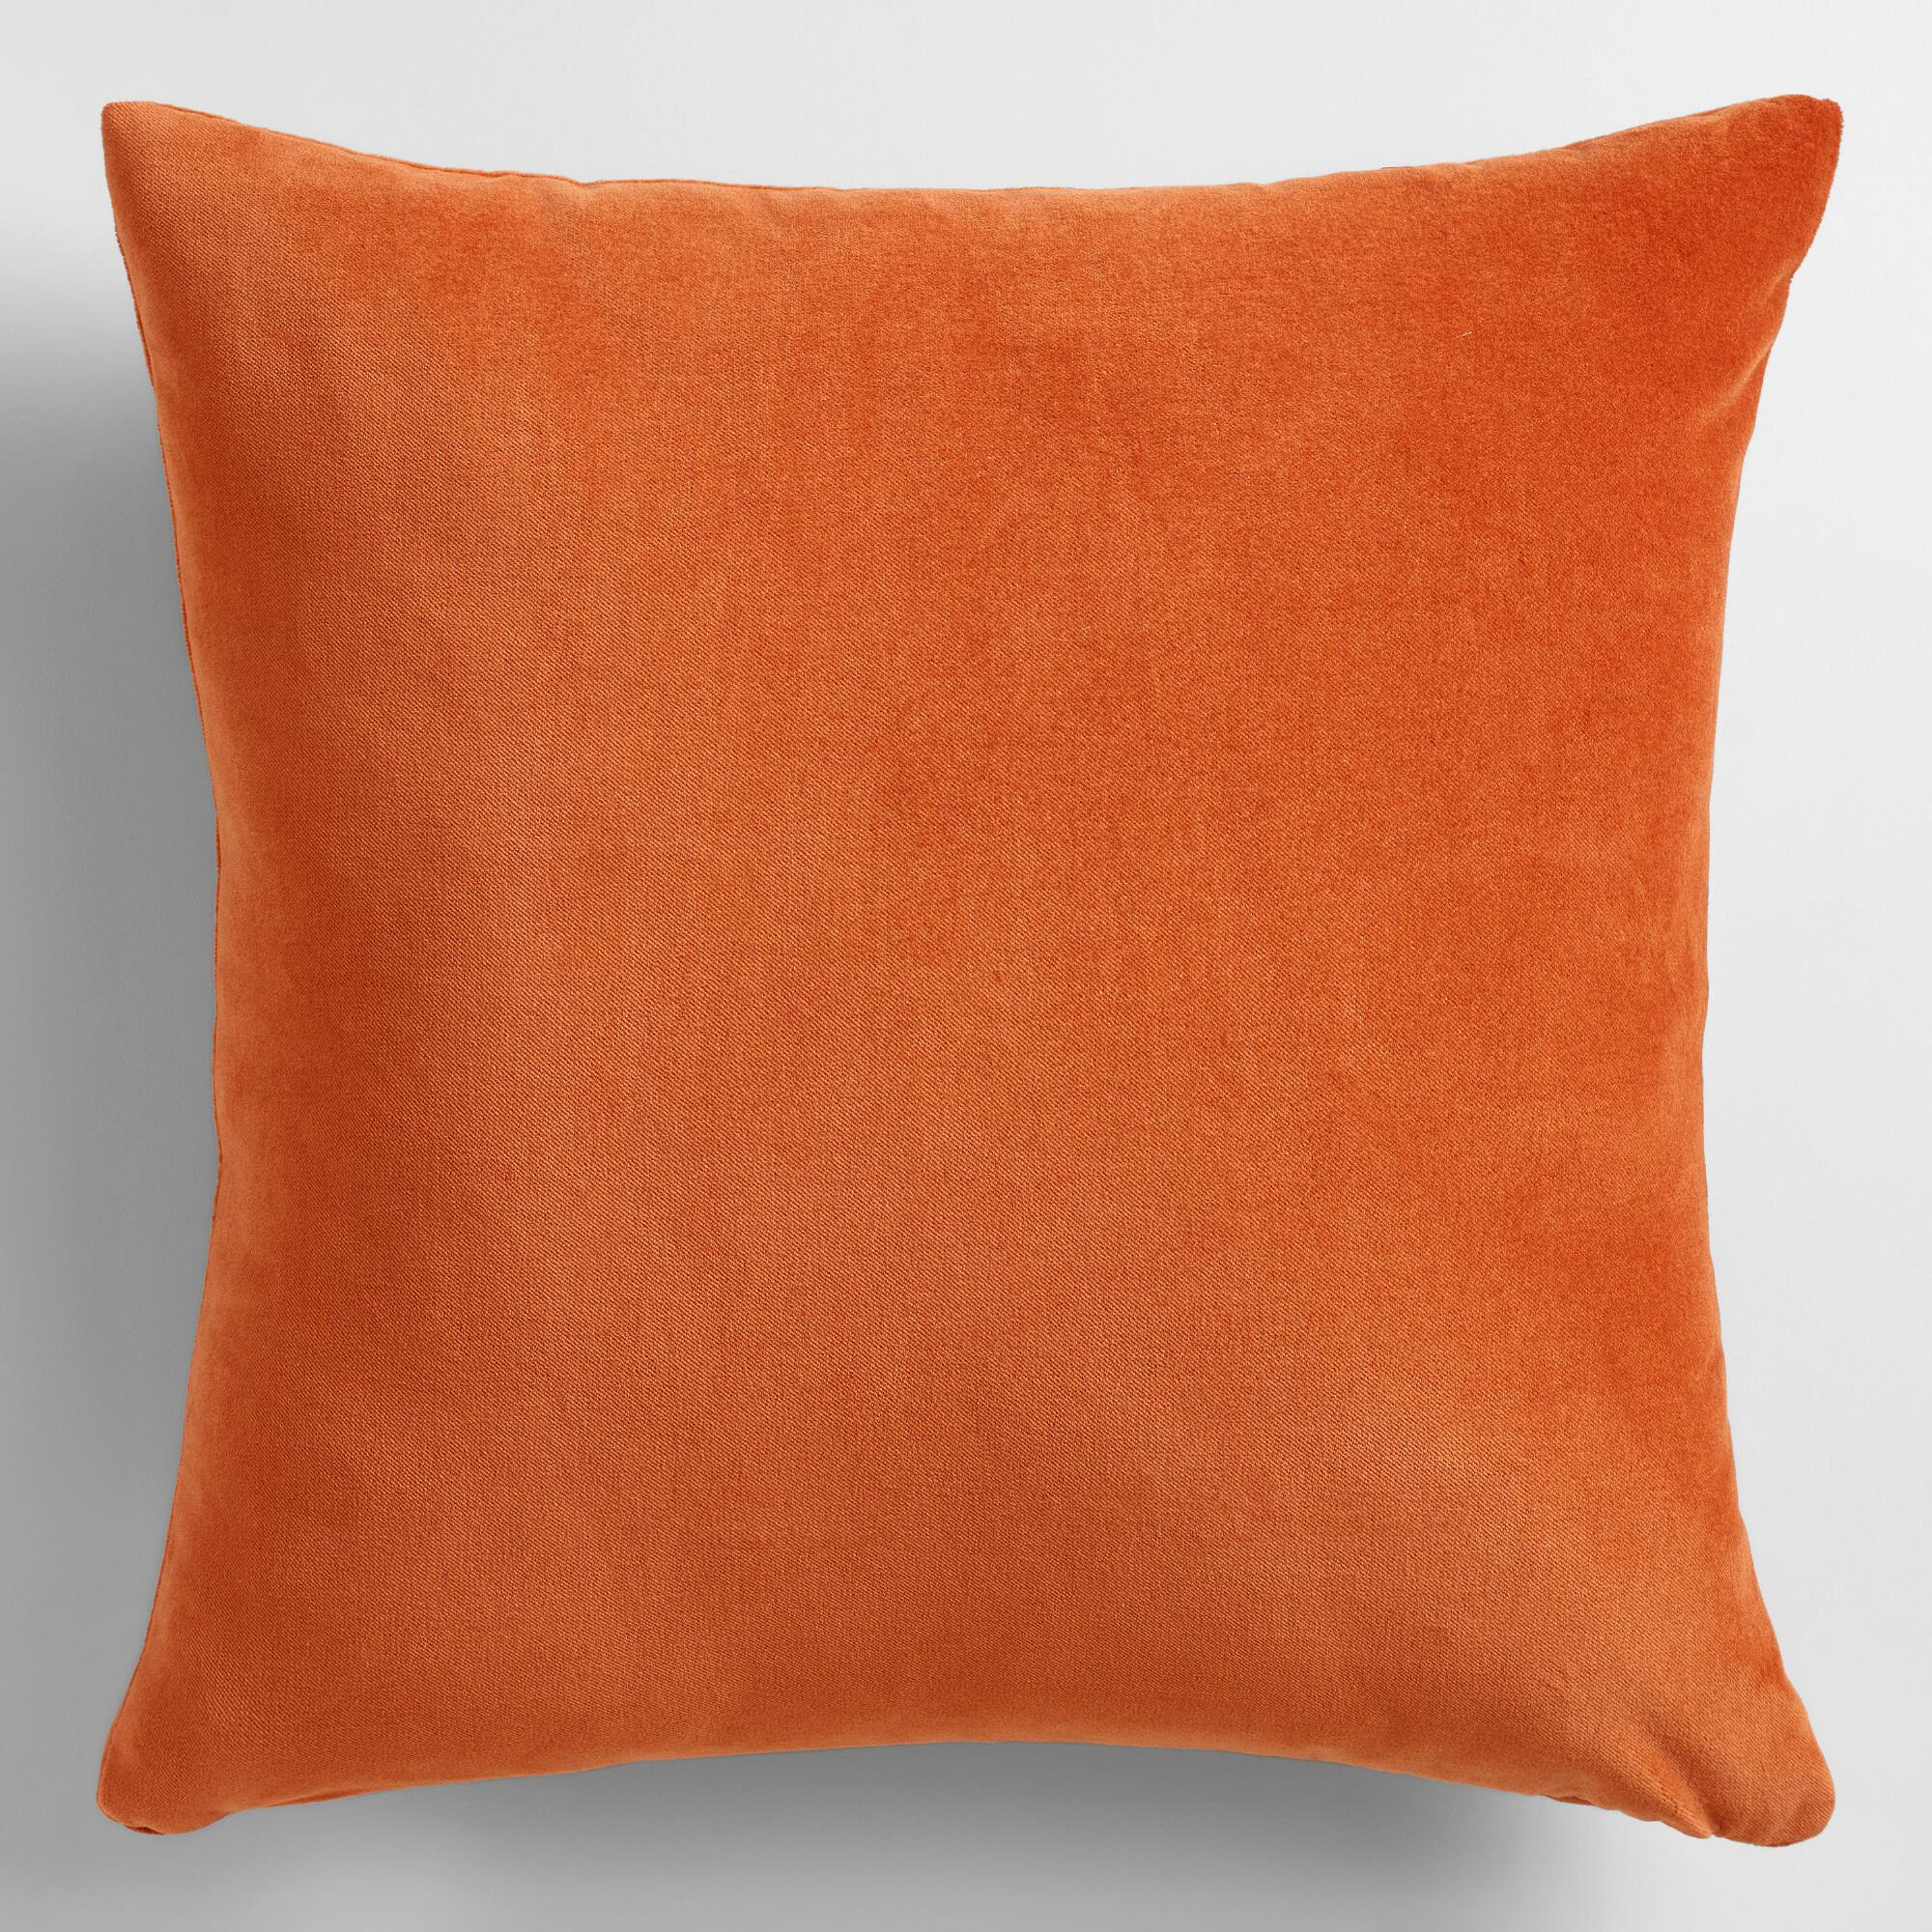 Newport Decorative Pillow : Newport Decorative Pillows ~ Instadecor.us